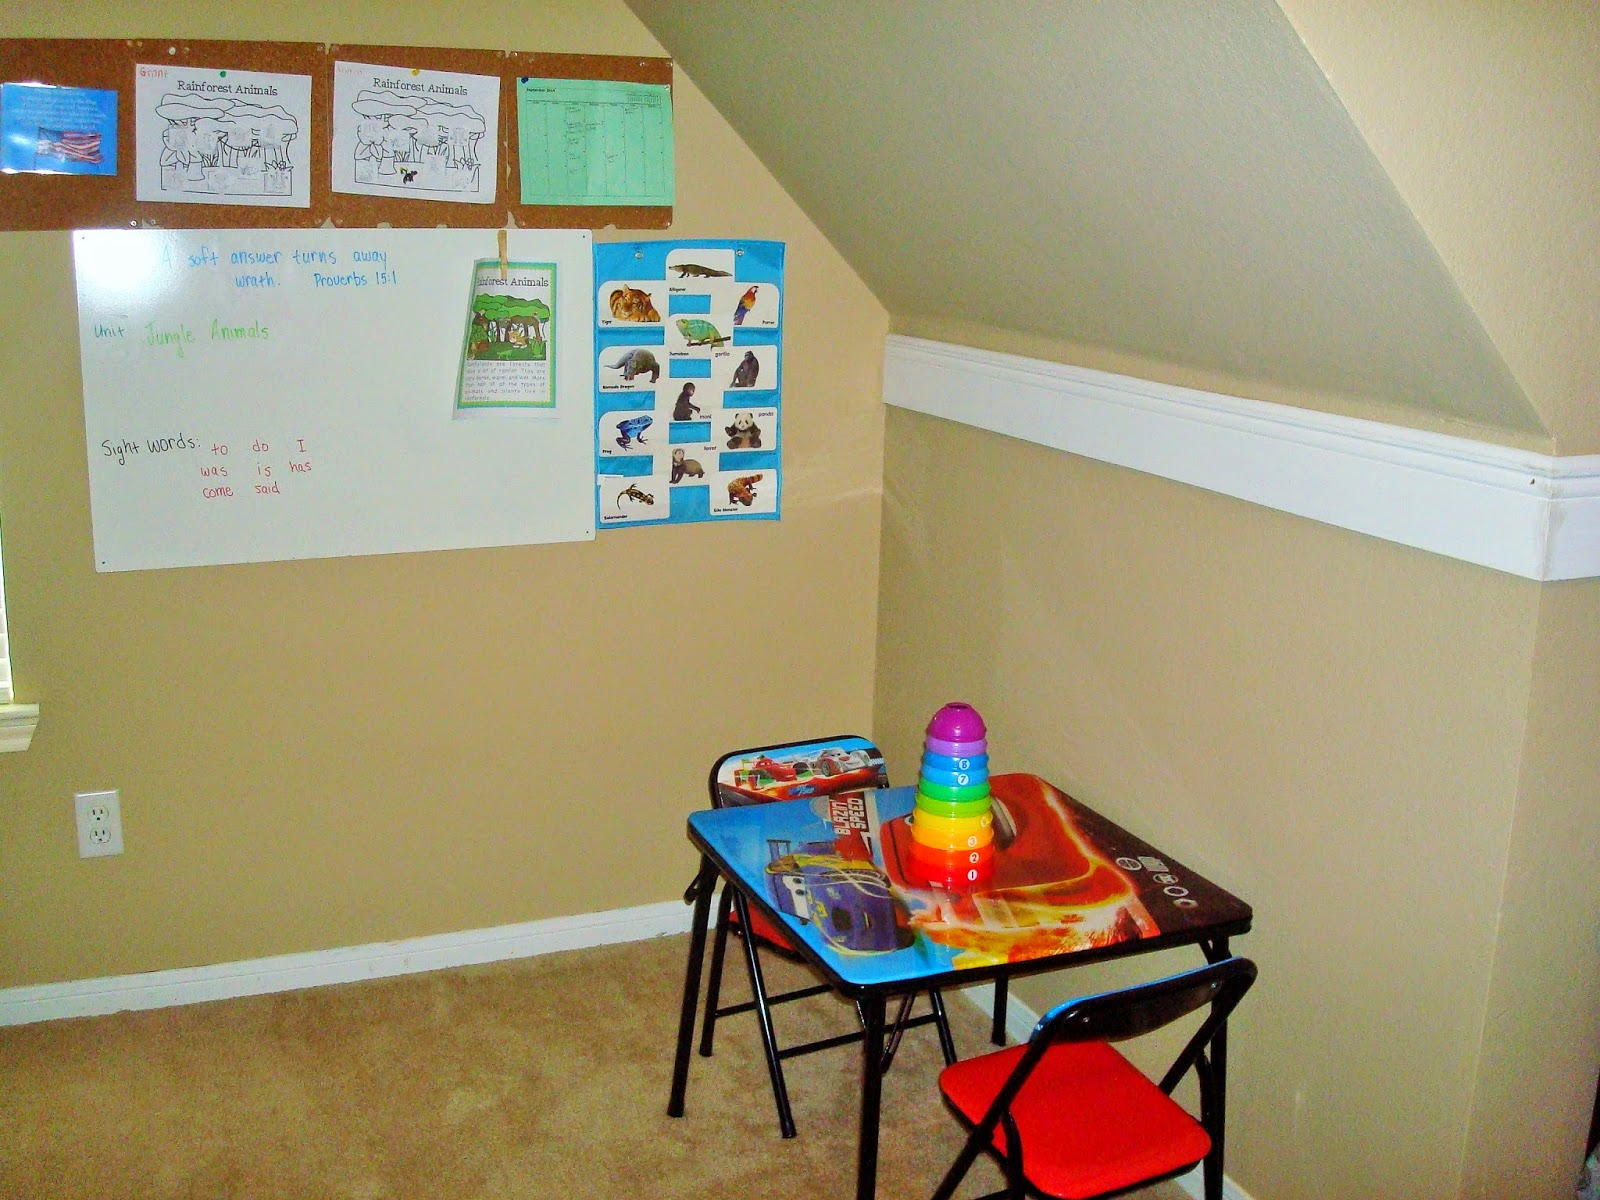 http://thewaythingsshouldbechildcare.blogspot.com/2014/09/our-new-toyschool-room.html